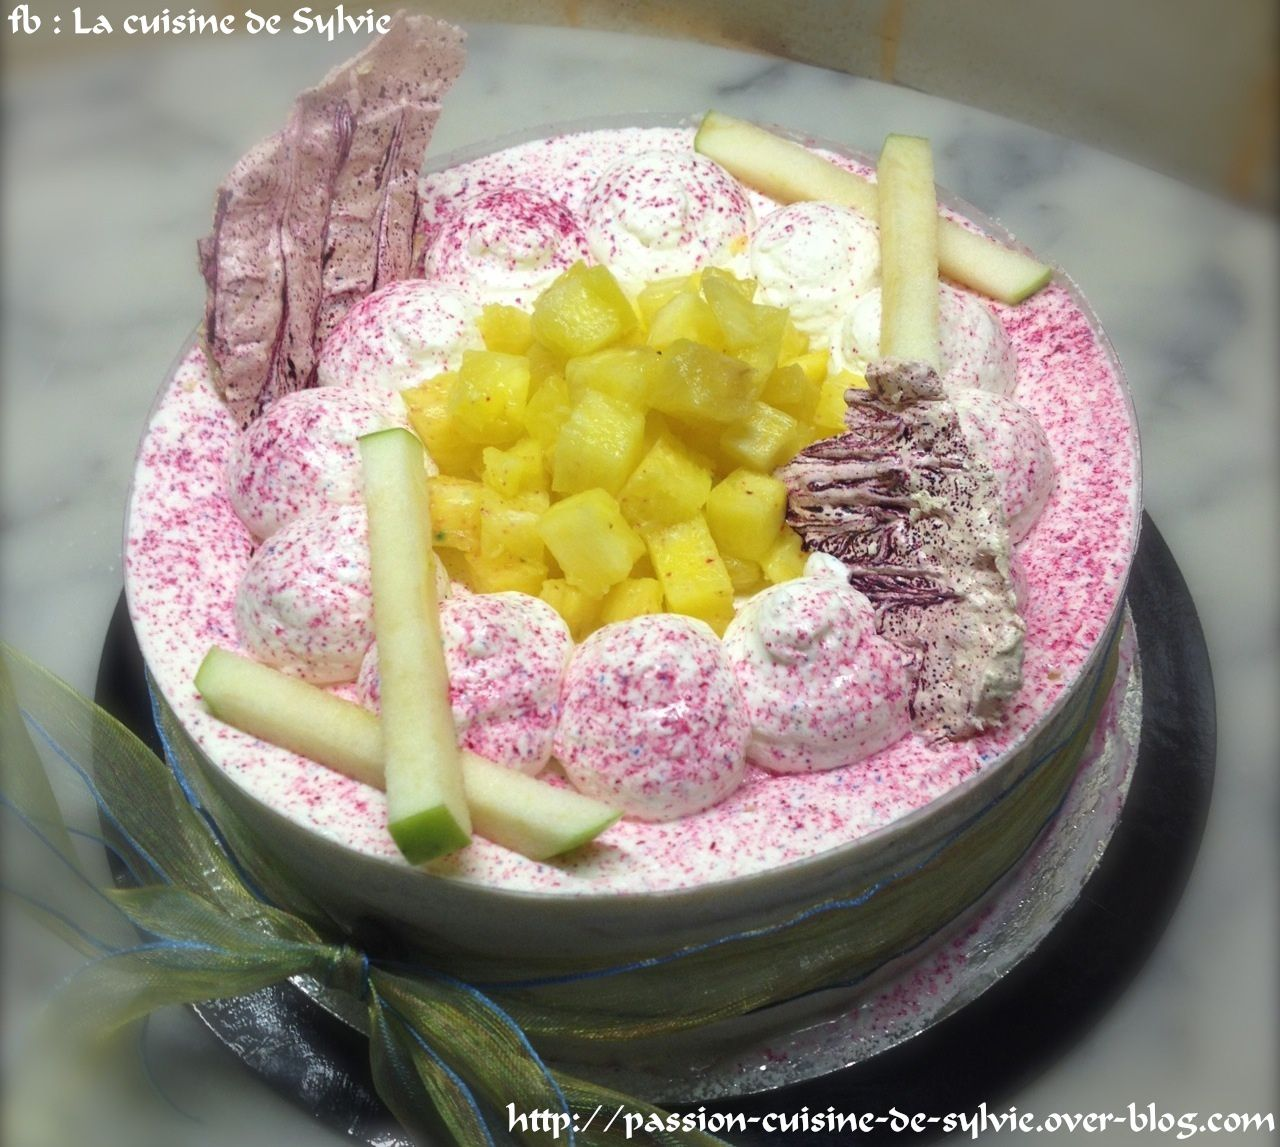 Pavlova la cr me citron passion cuisine de - Passion de cuisine over blog com ...